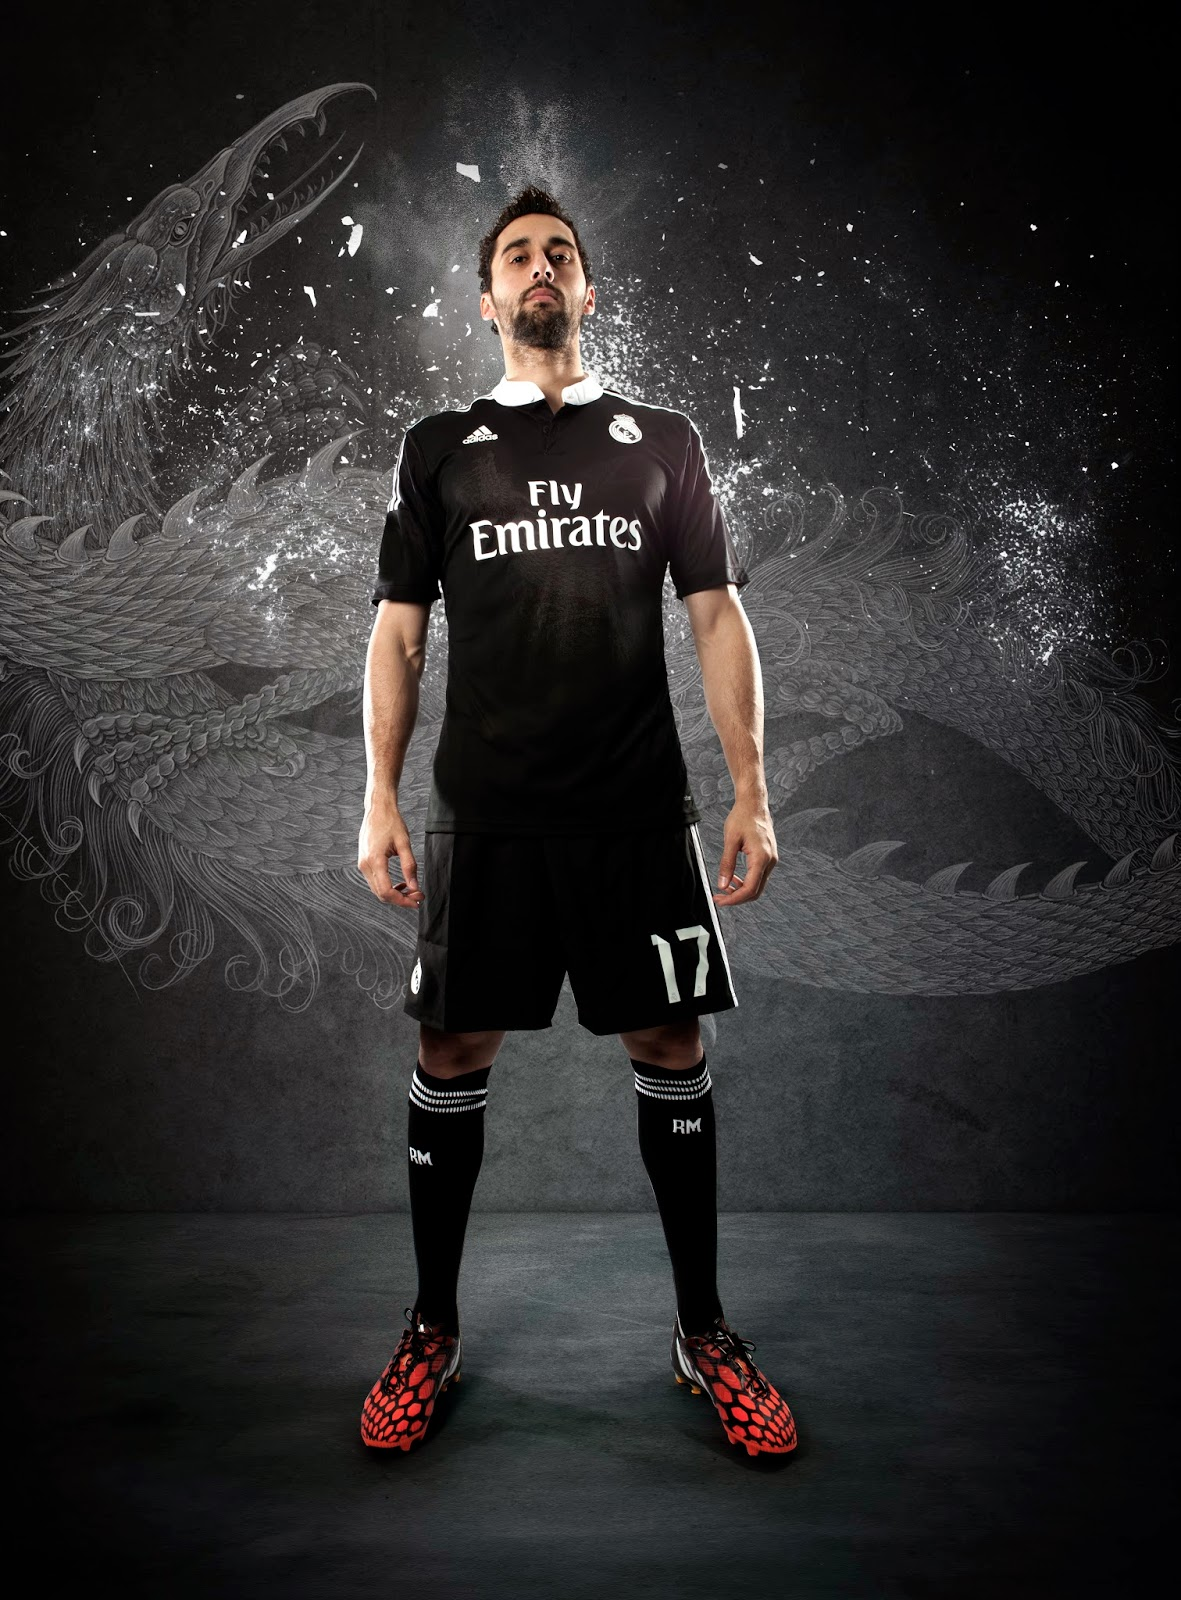 e5195c61f The black and white kit was inspired by Yamamoto's vision of a heroic story  that positions Real Madrid's players as modern-day heros.